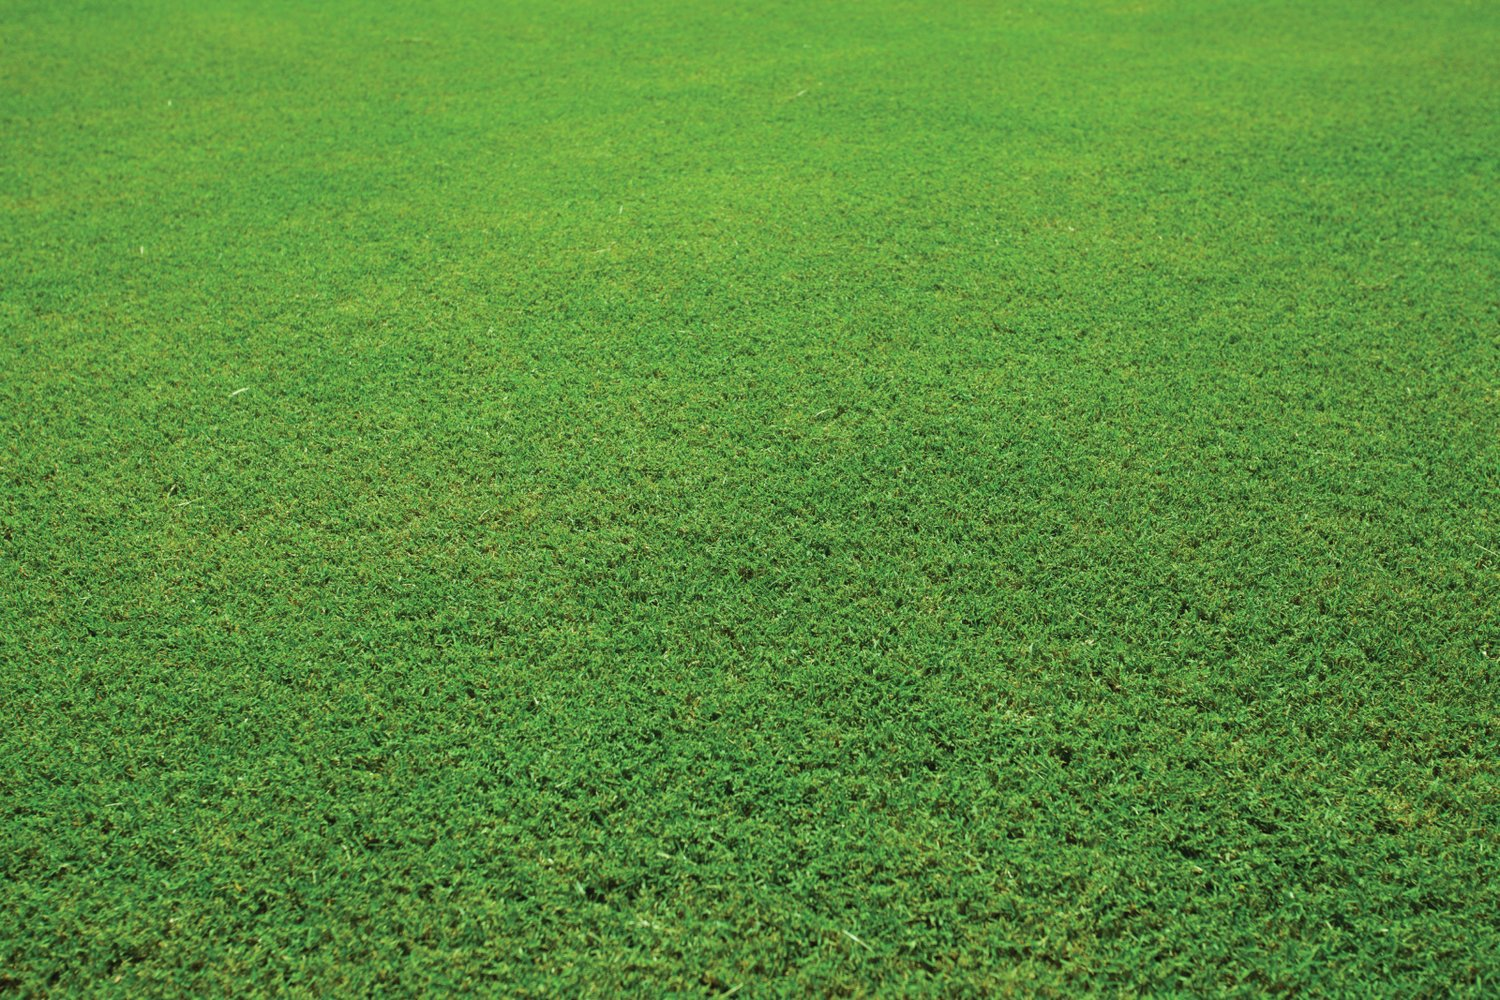 TifTuf_up_clse.jpg - Turf Farm Roll On Turf, Lawn & Grass Suppliers Perth, Western